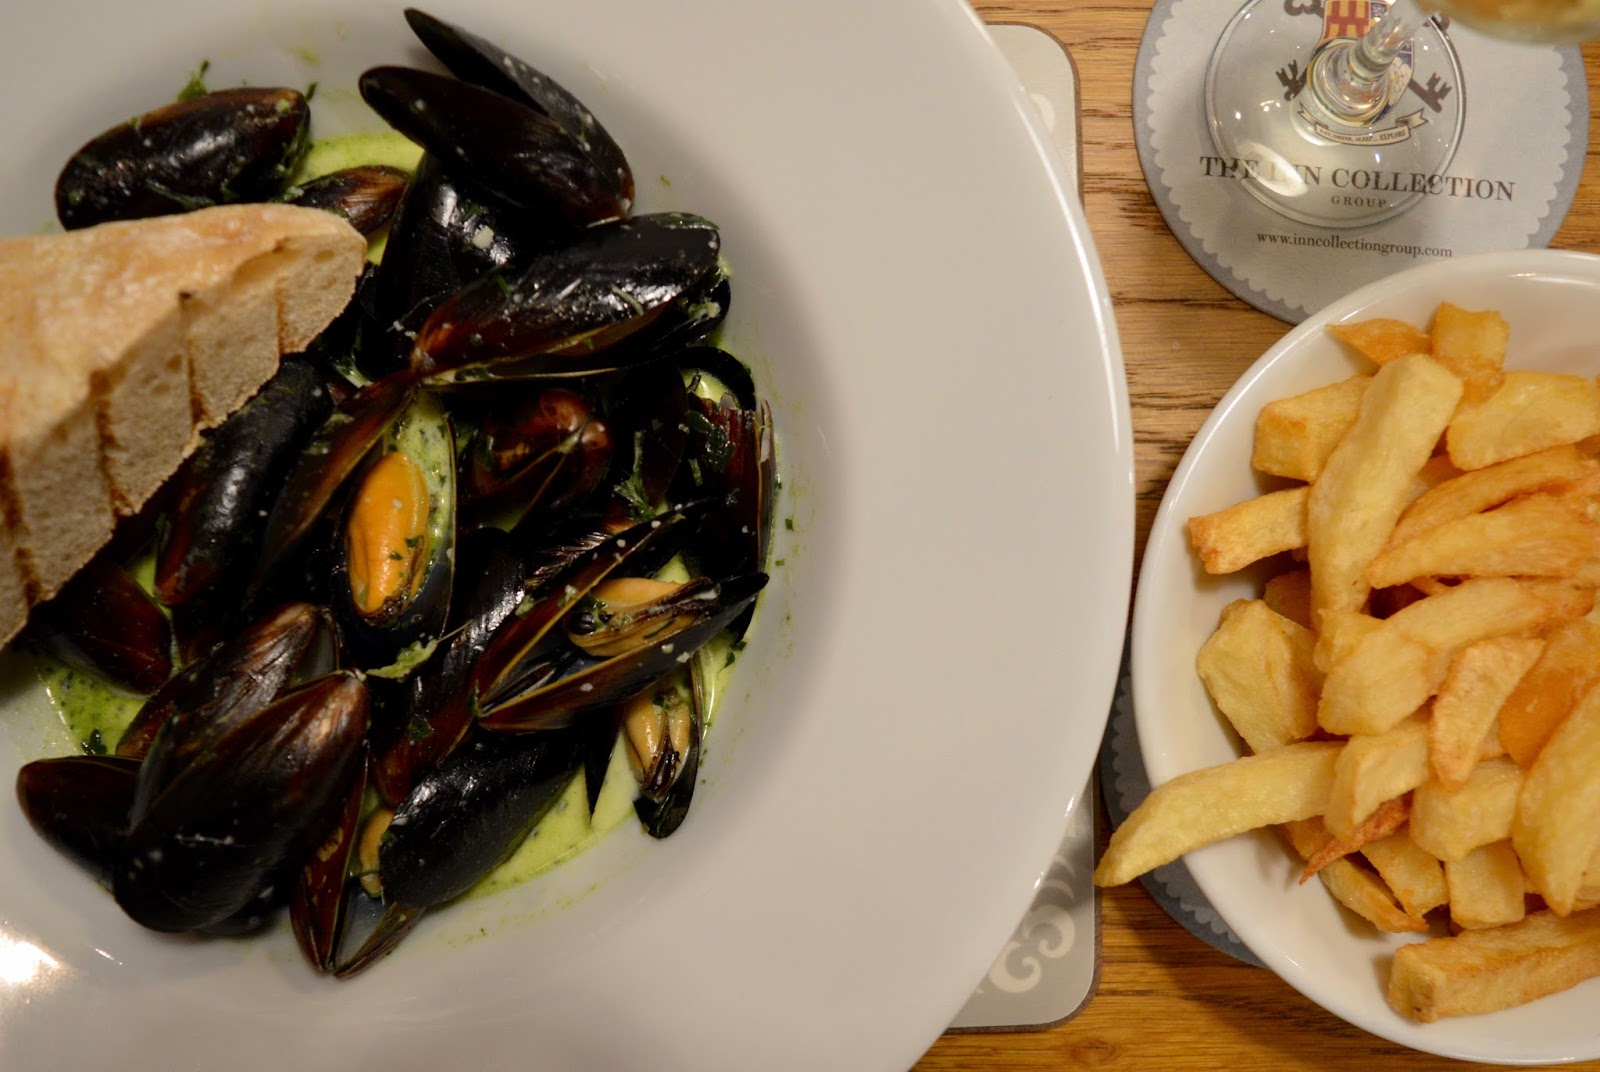 The Kingslodge Inn, Durham | A Review - A lovely budget hotel near the train station and city centre - mussels in white wine sauce